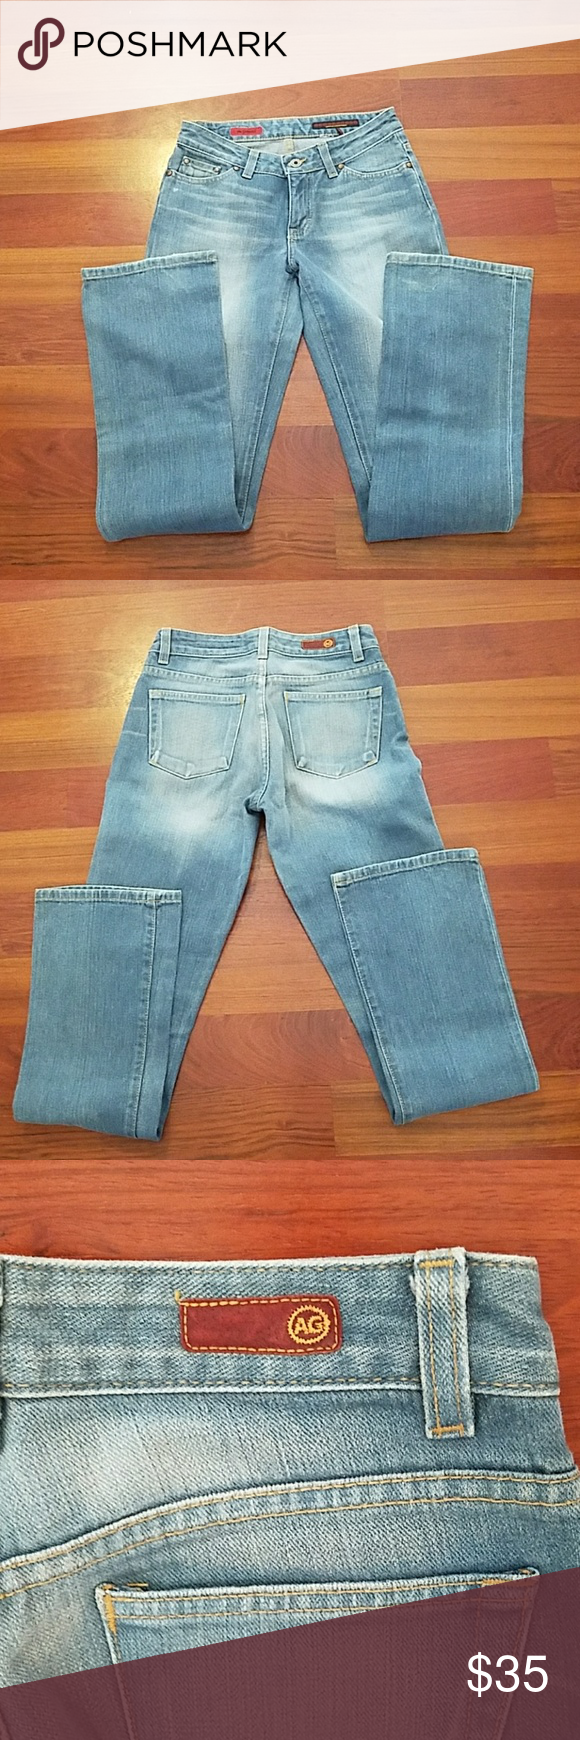 Adriano Goldschmied jeans EUC size 26/reg AG jeans in faded blue color some light faded lines on front. In excellent condition no flaws except small fray on hem. The rise is 8 inches and the inseam is 34 inches. 100% cotton. AG Adriano Goldschmied Jeans Boot Cut